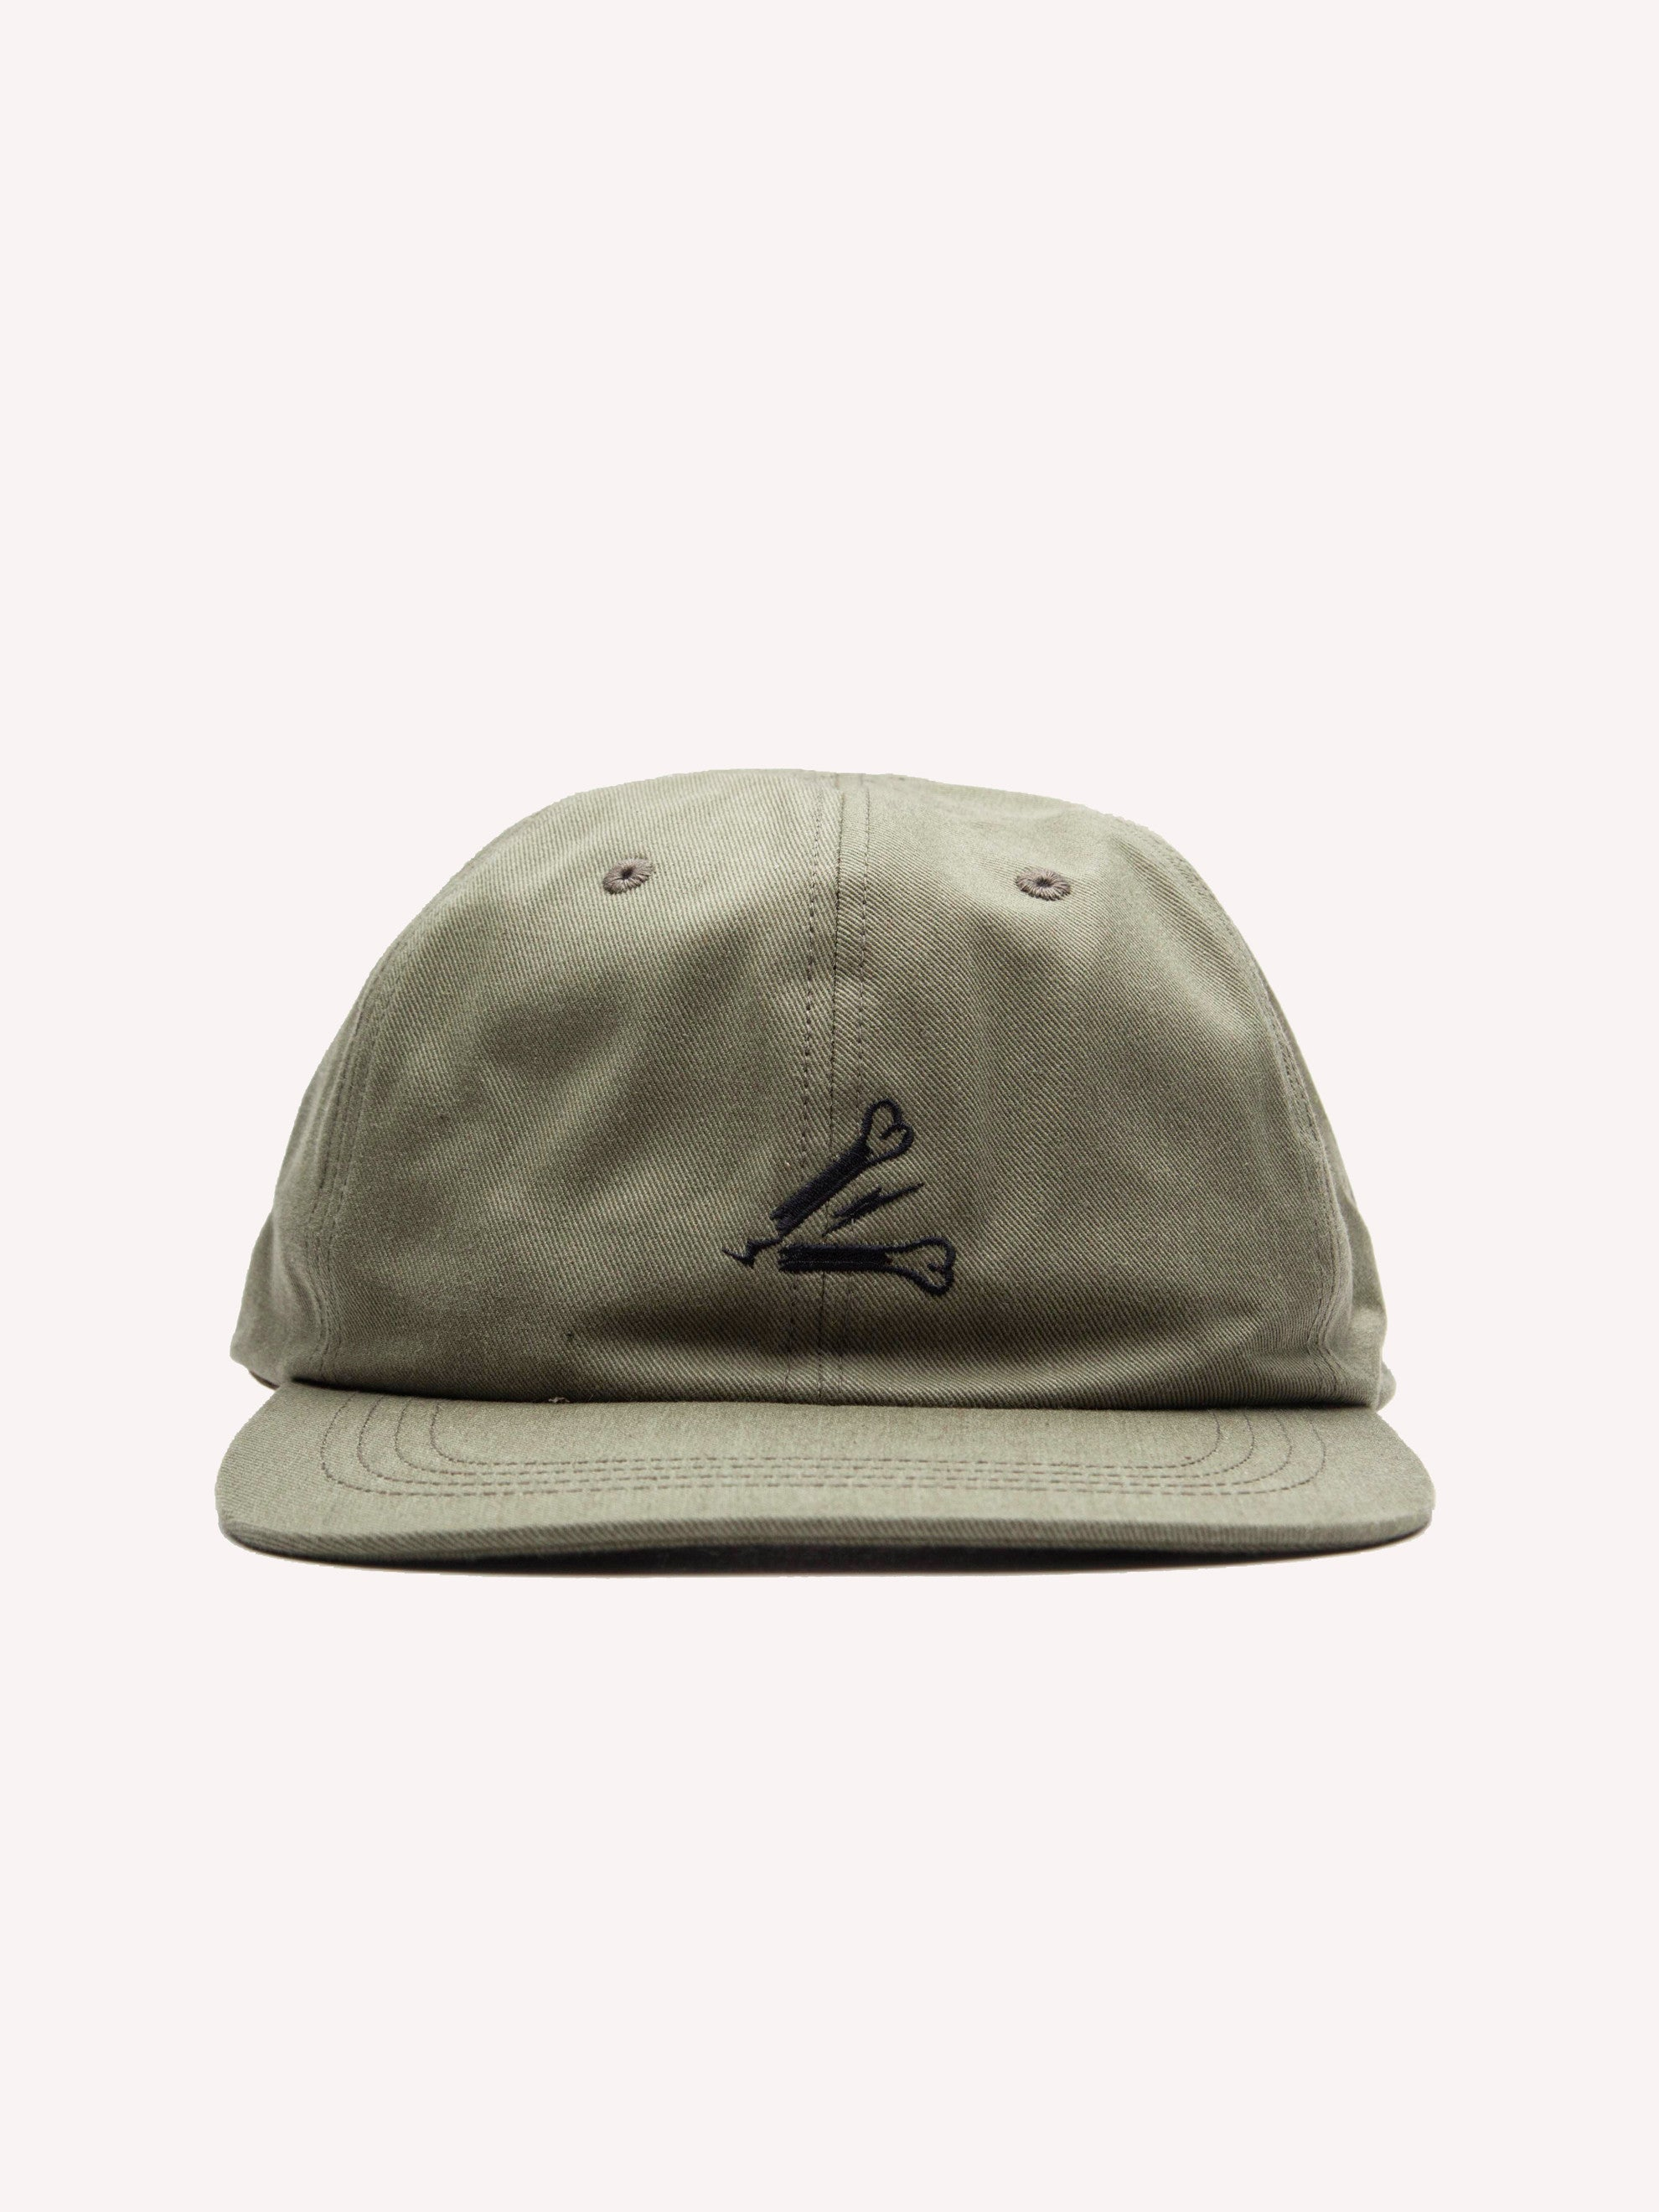 Olive Drab T-6 Cap (Cotton Chino) 3